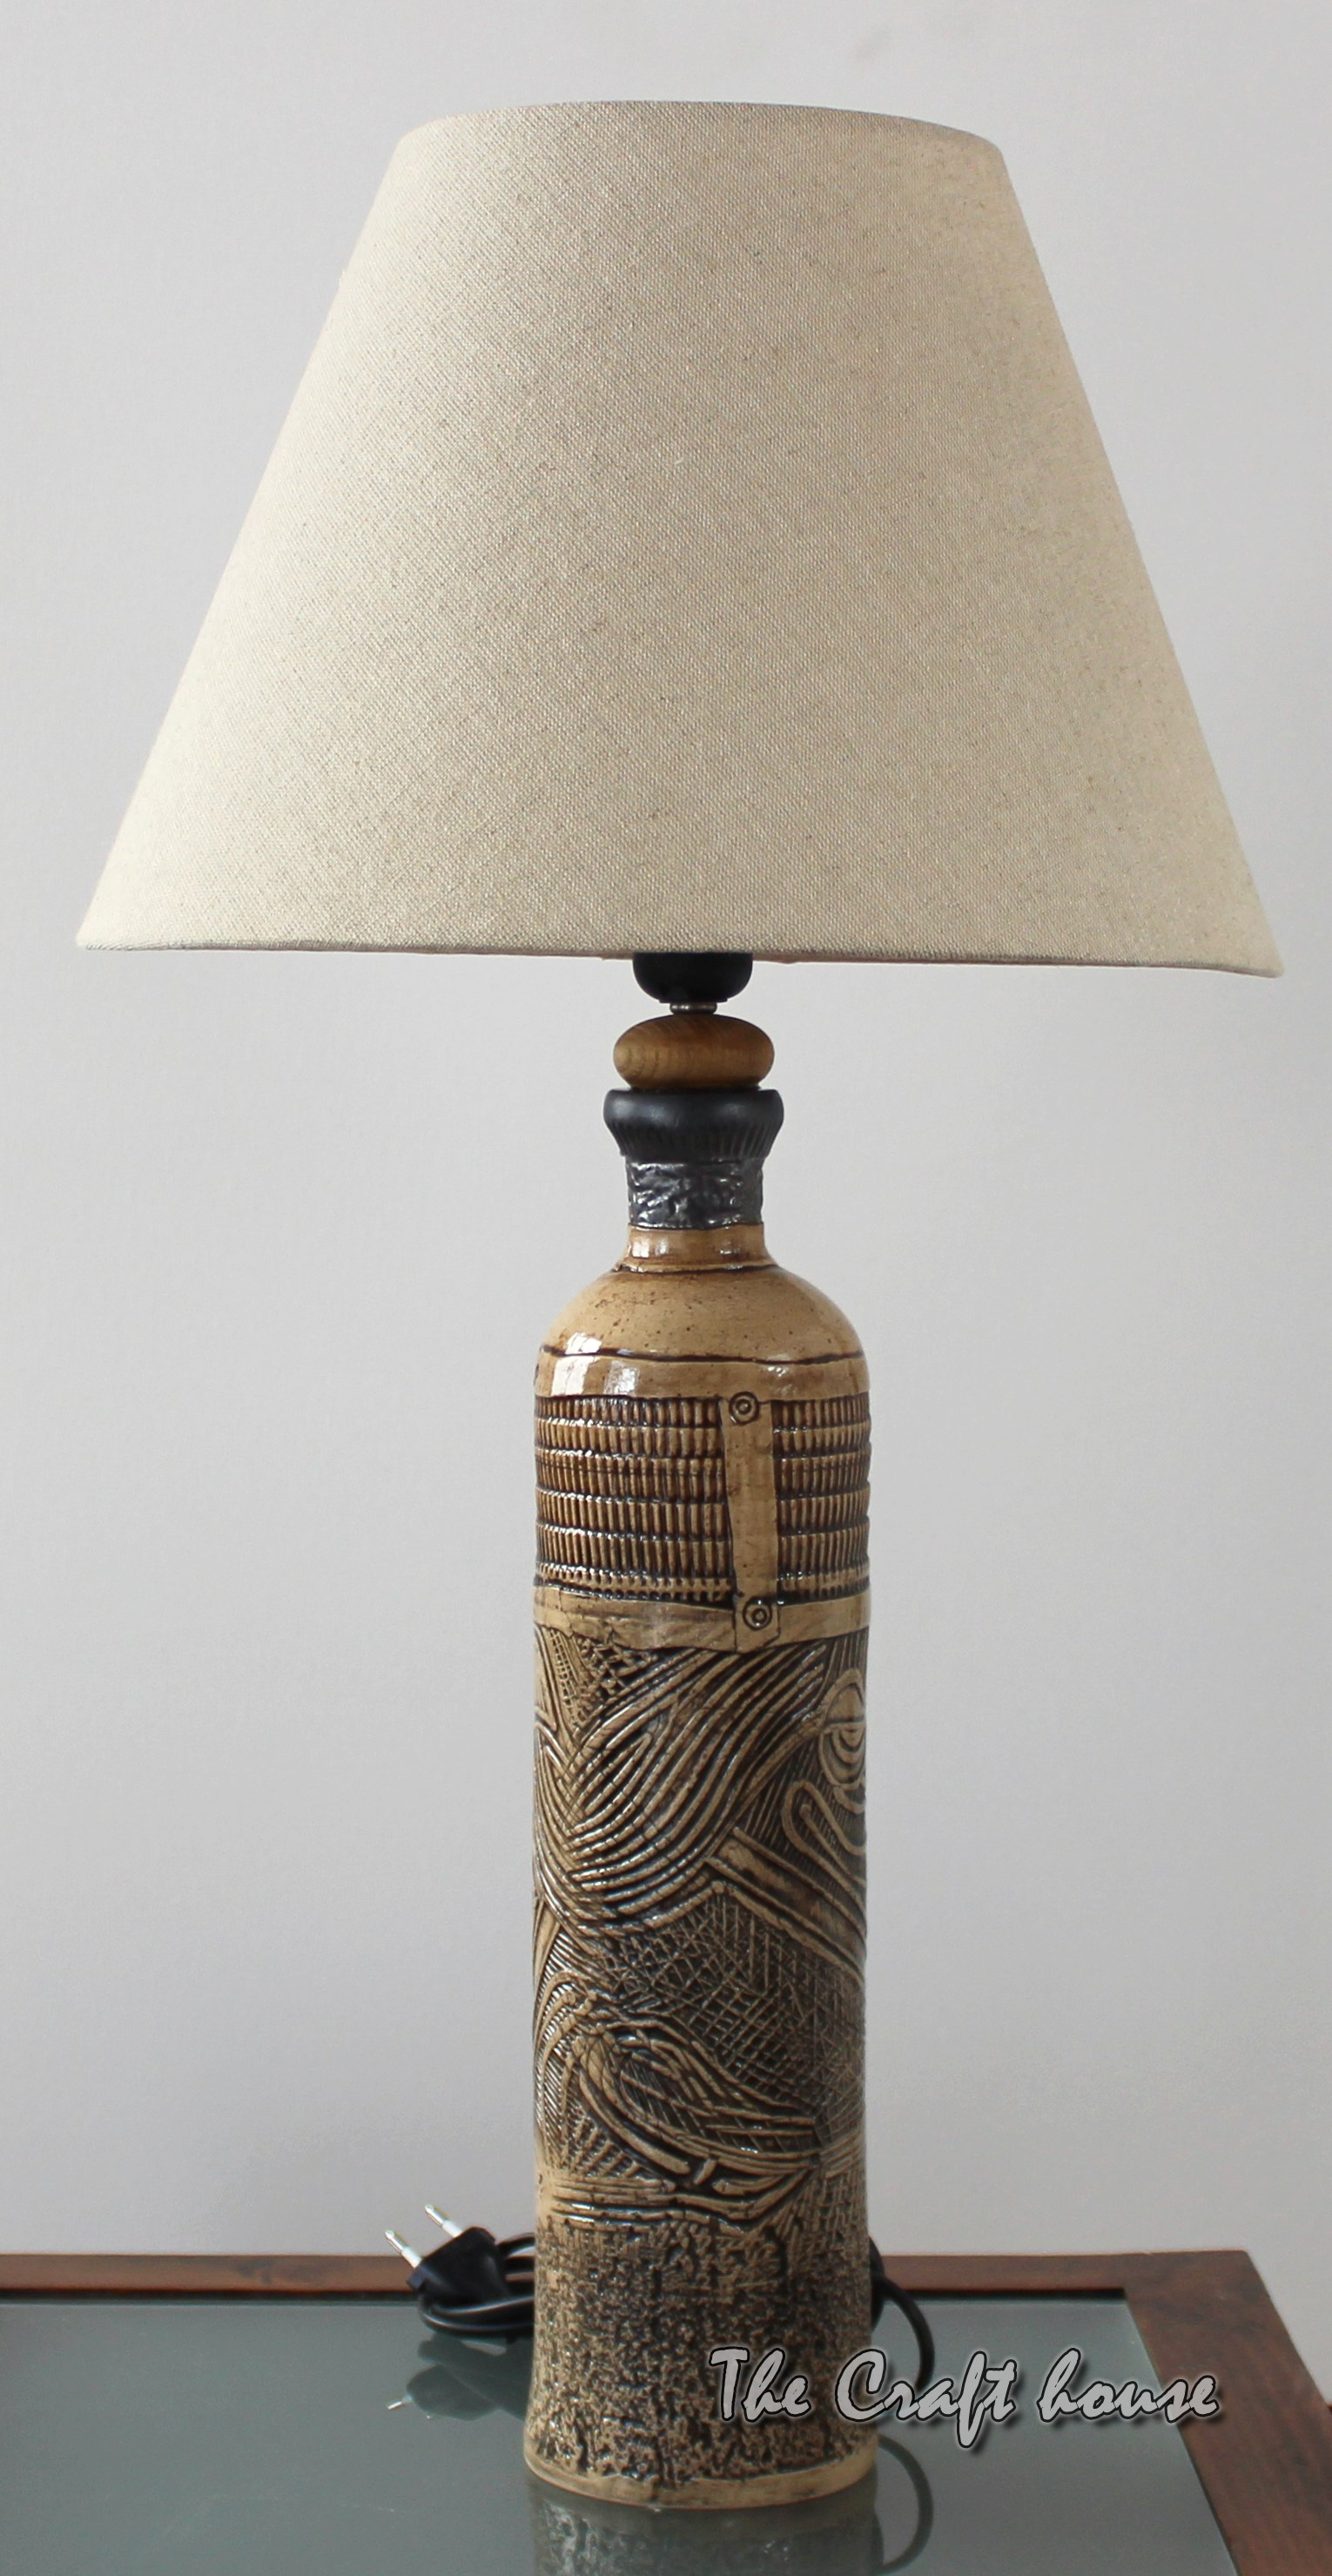 Ceramic lamp 'Art'